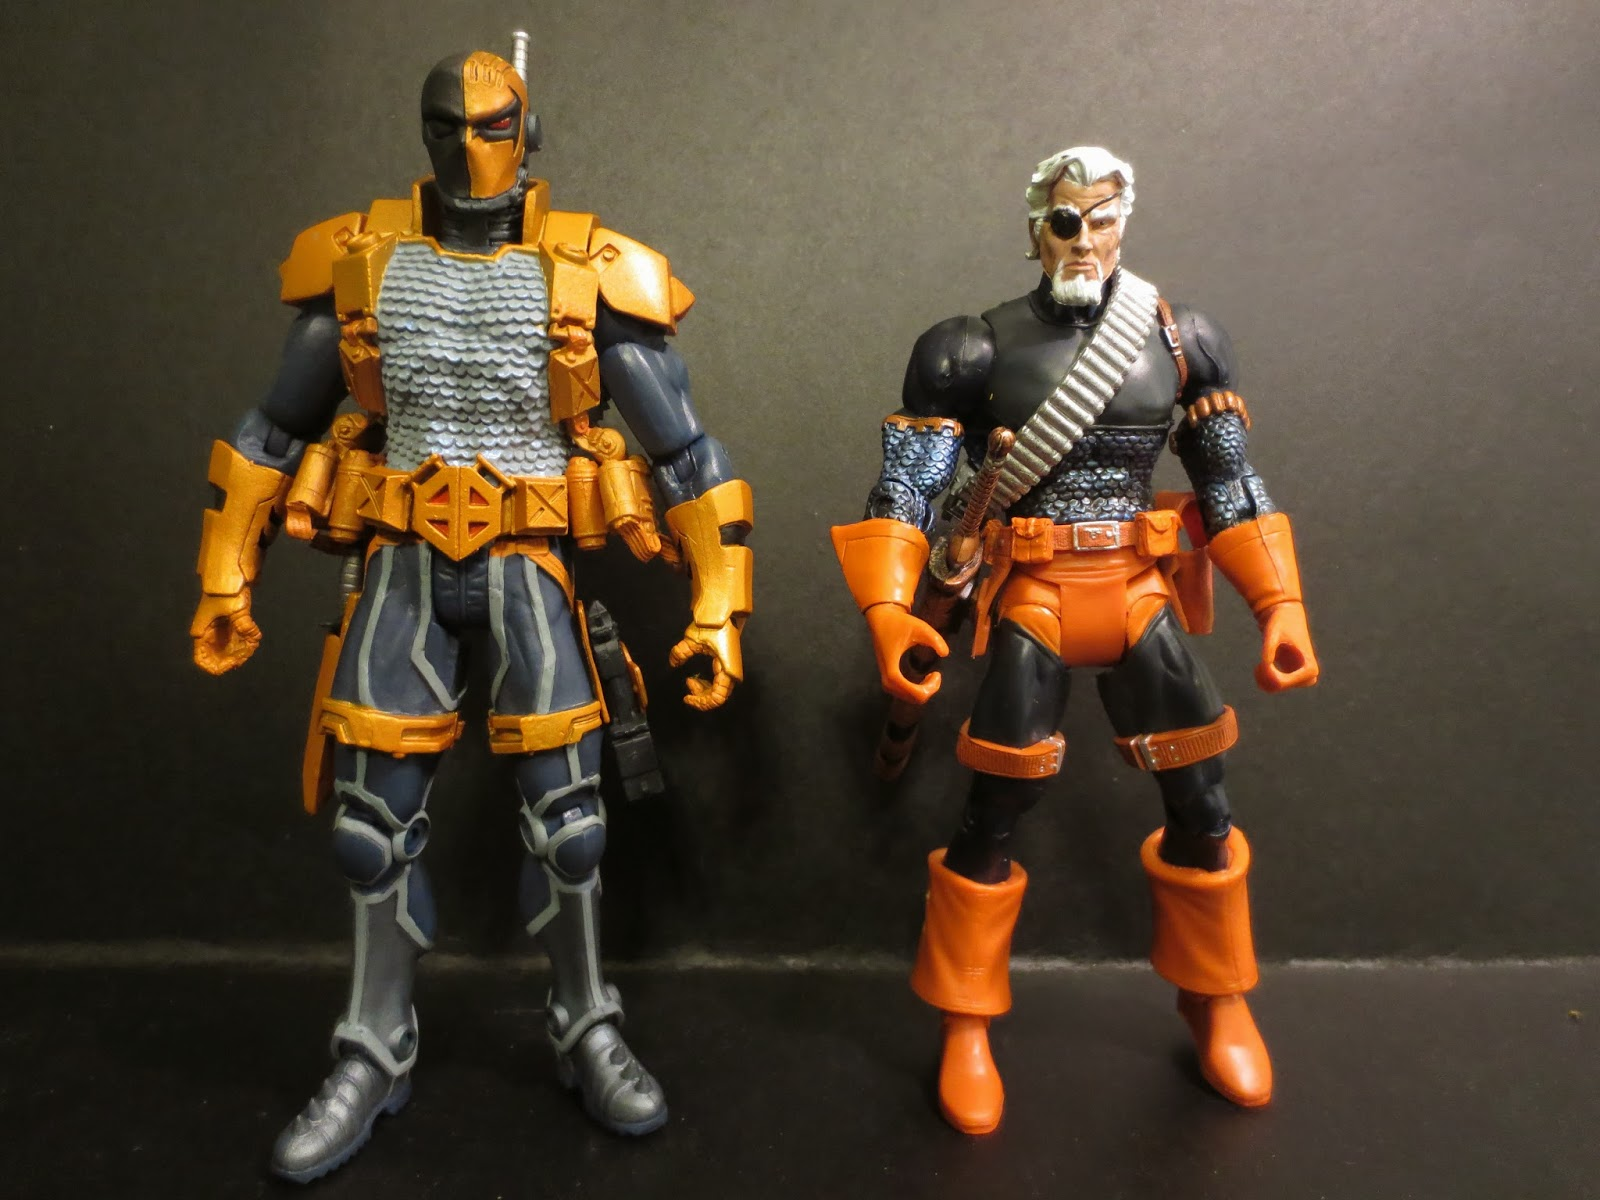 The Epic Review: Action Figure Review: Deathstroke from The